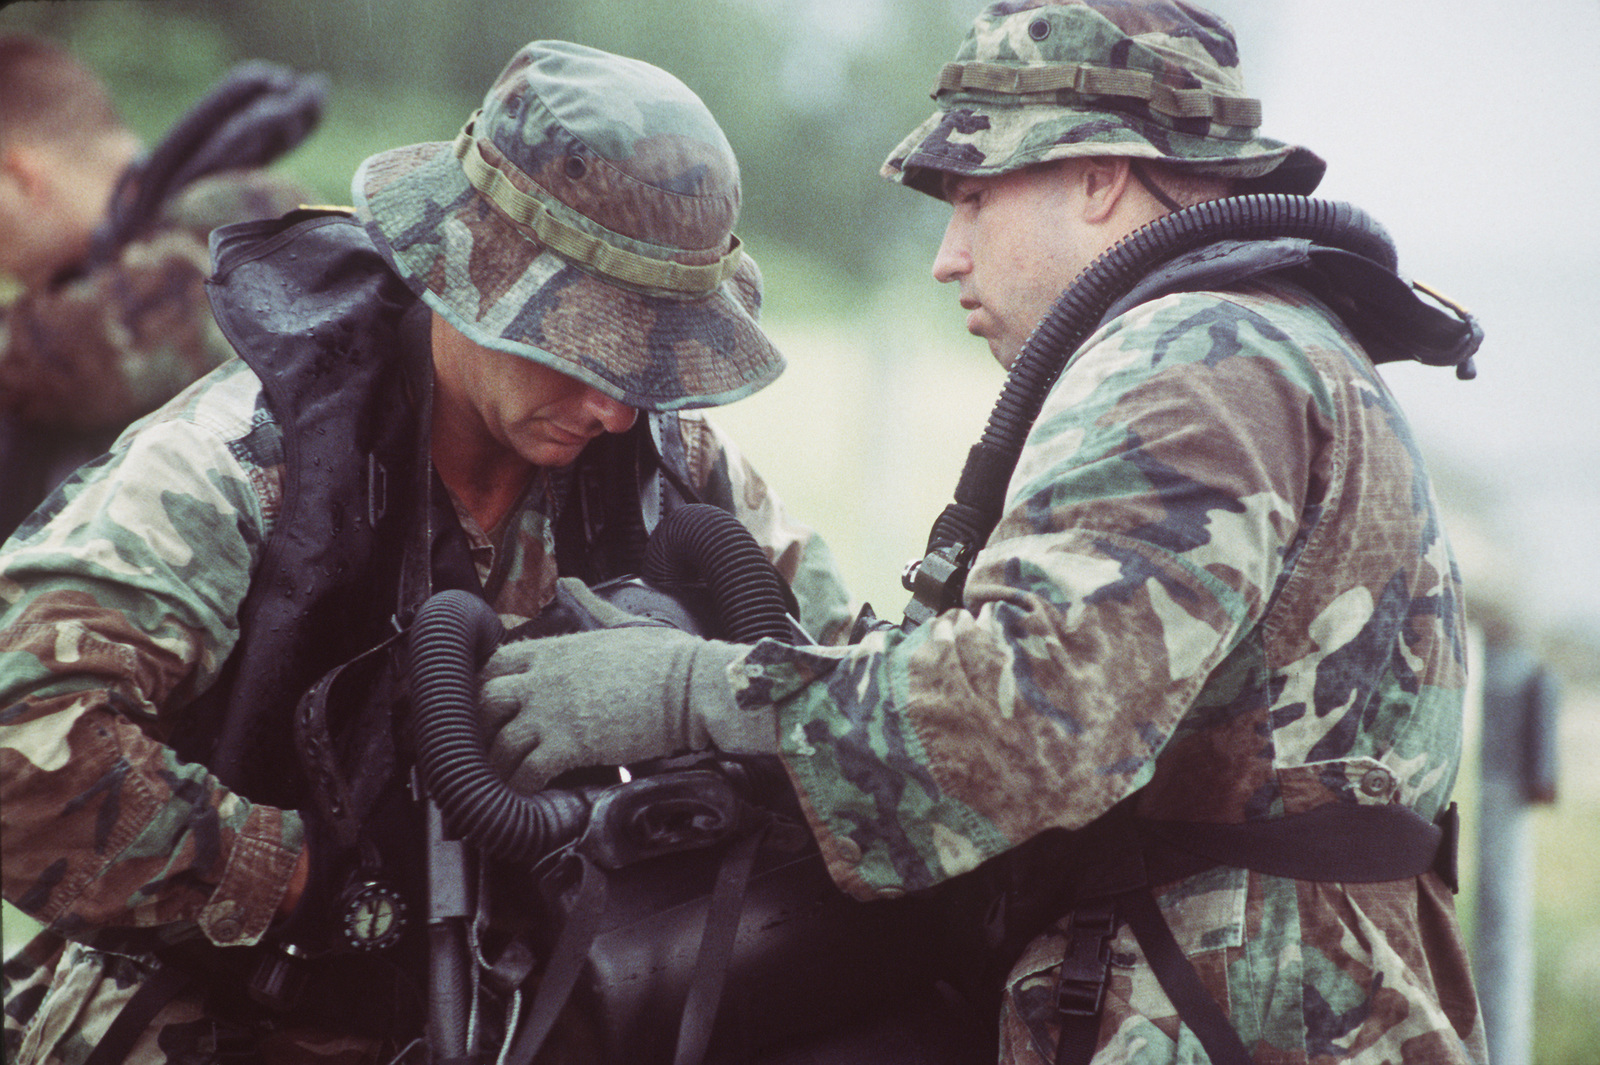 STAFF SGT. Stockwell (left) and CAPT. D Amico suit up using